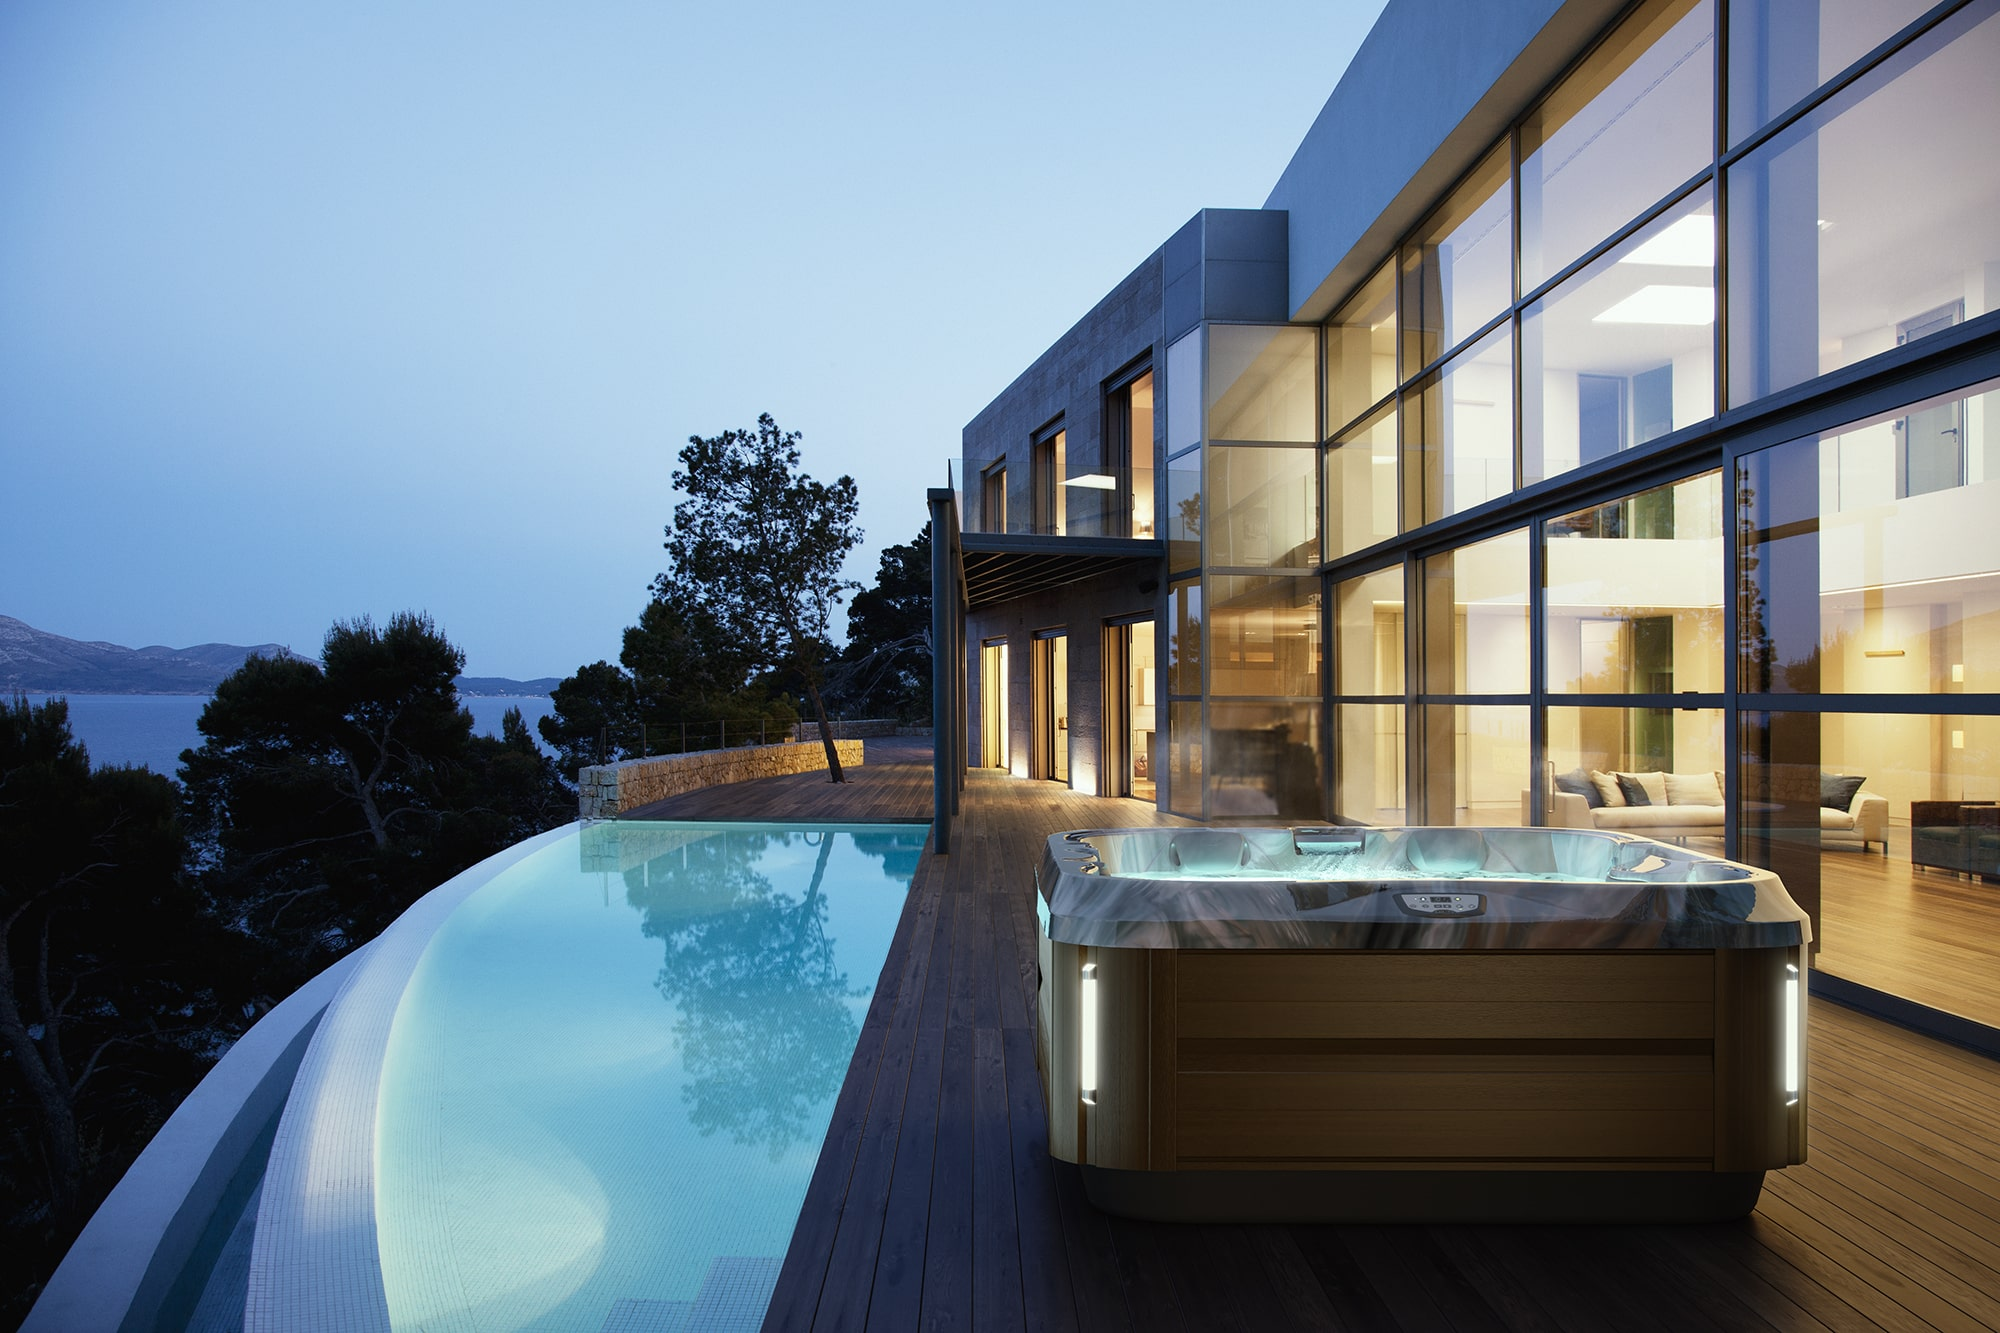 J-325 Jacuzzi Hot Tub Installation in Los Angeles, California